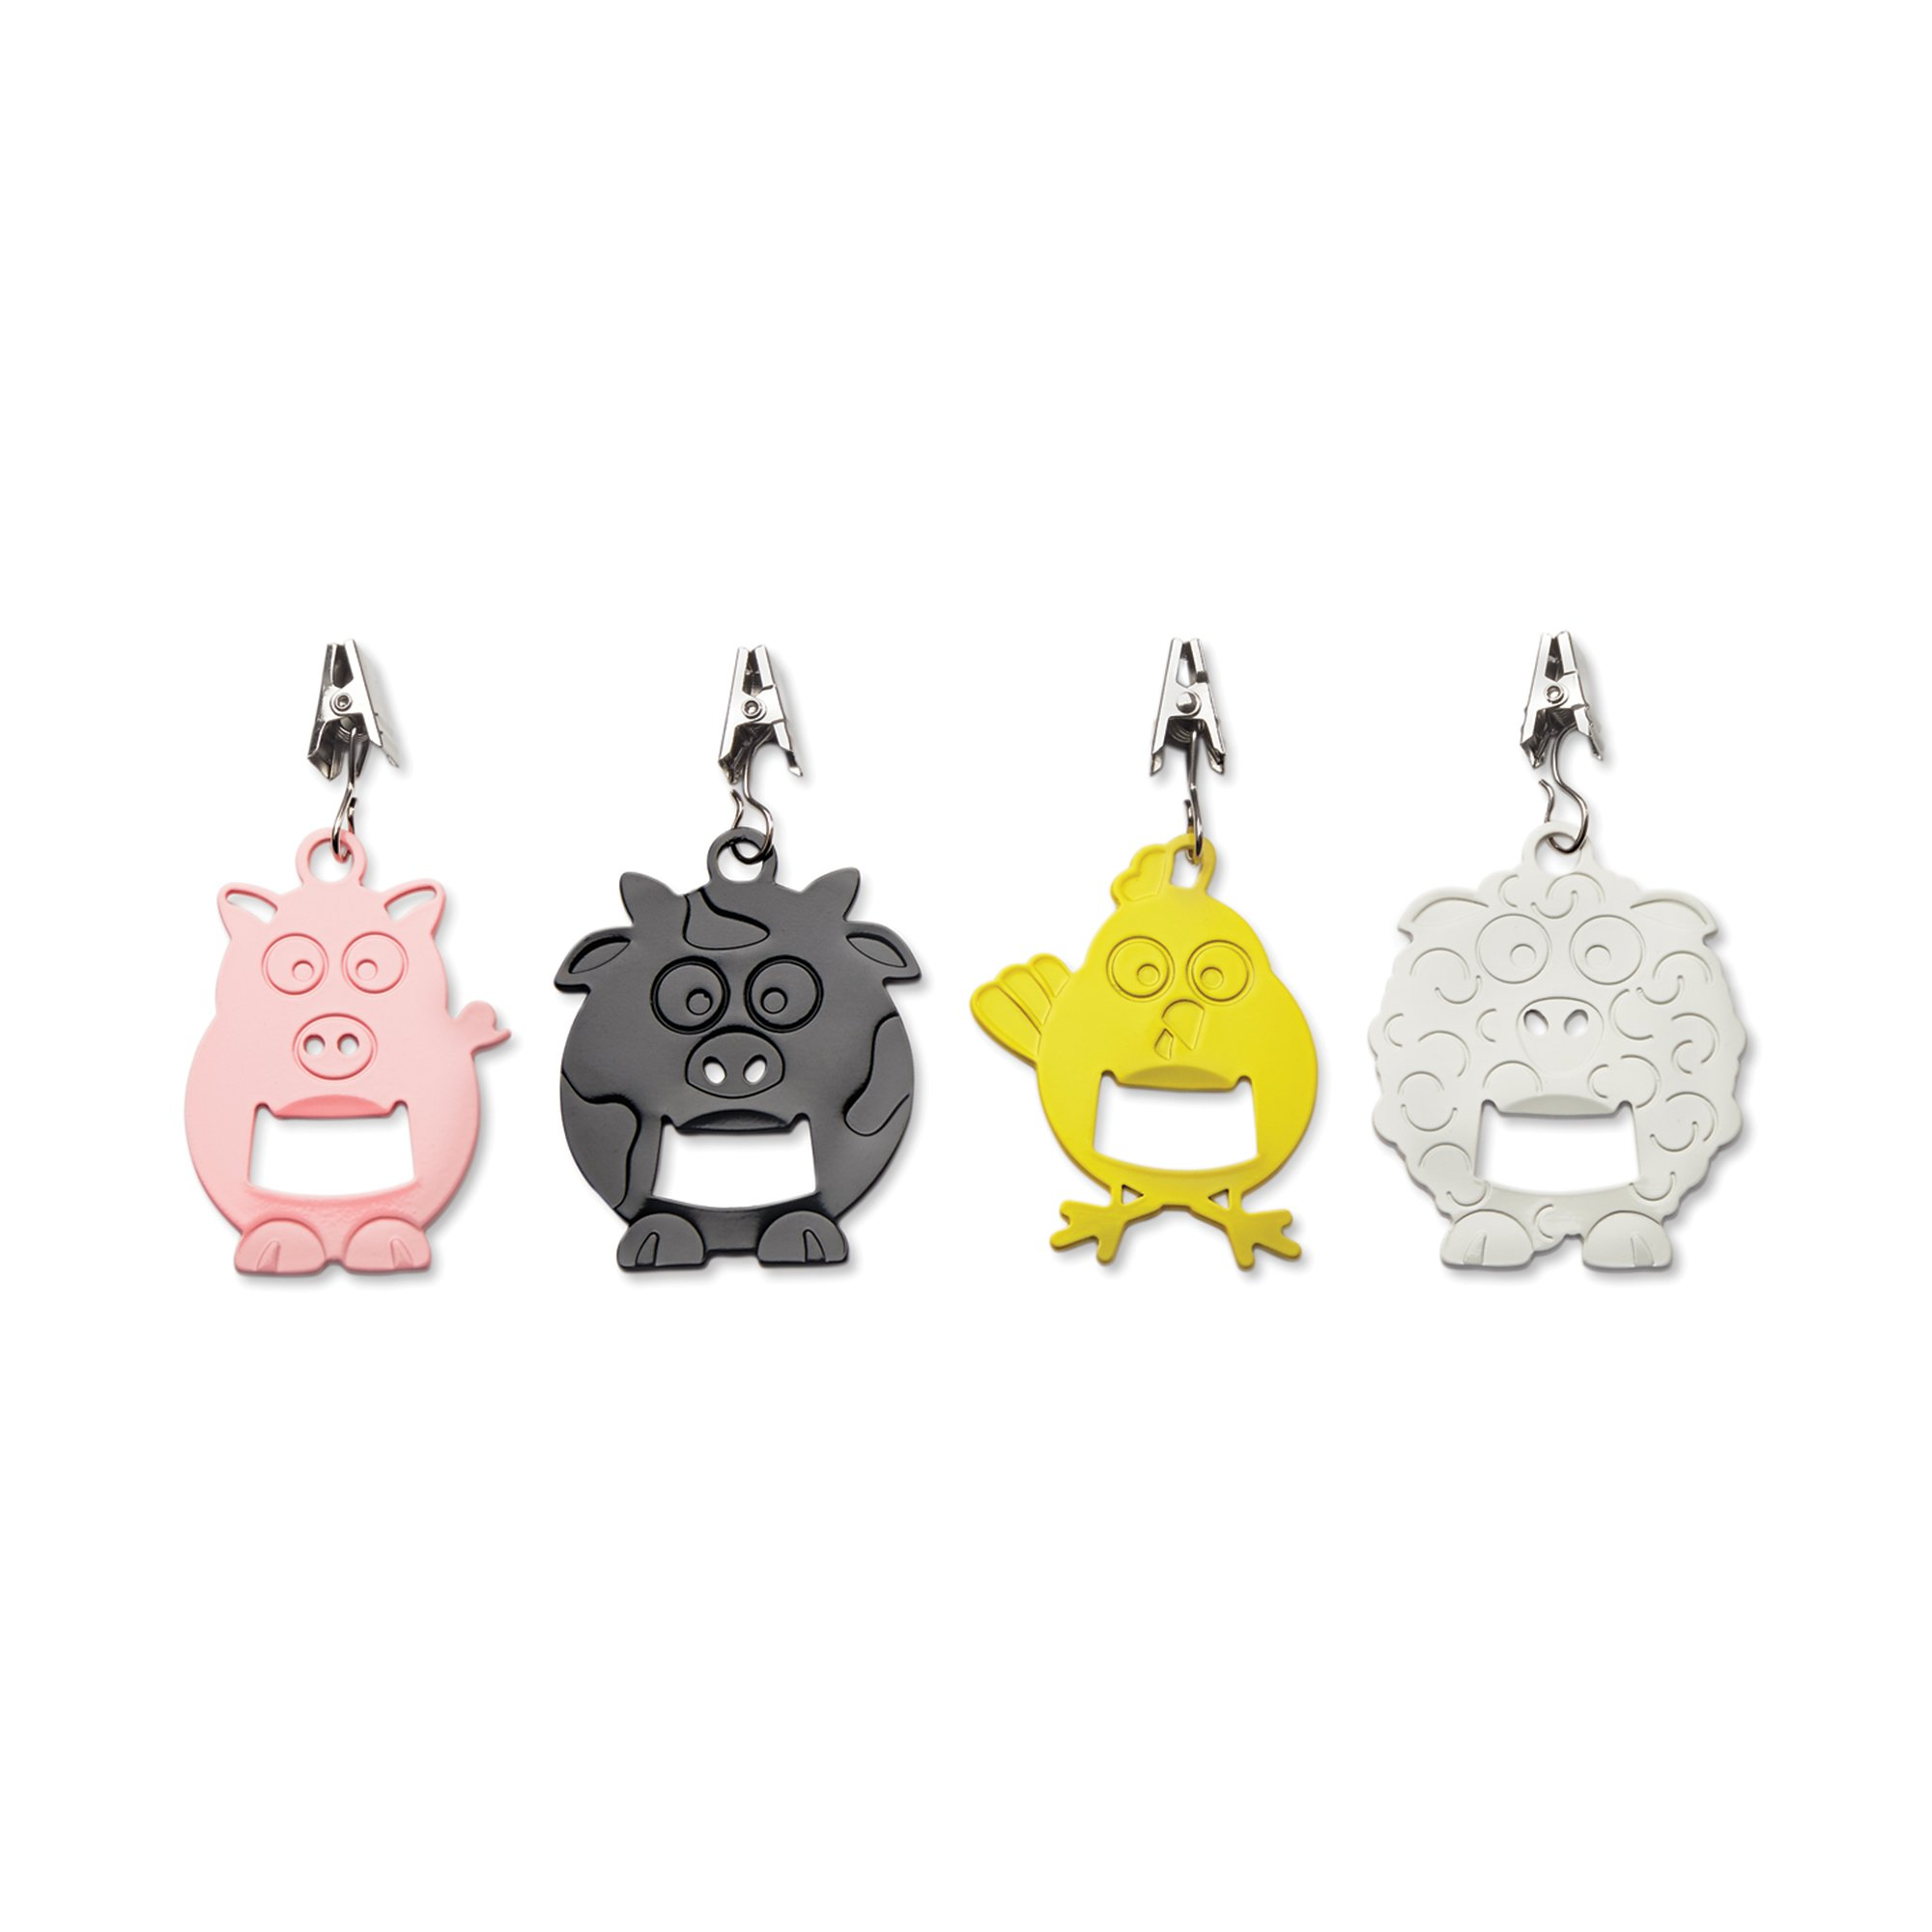 Outset 76220 Tablecloth Weights with Bottle Opener, Barnyard Animals, Set of 4